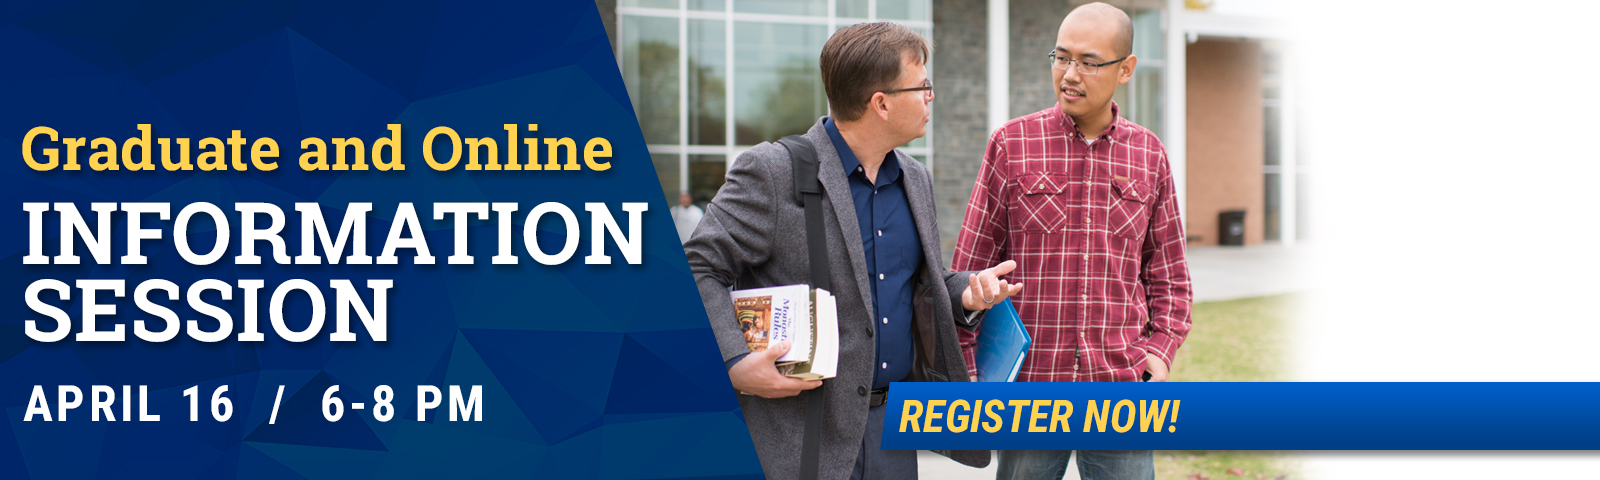 Graduate and Online Information Session April 16, 2019